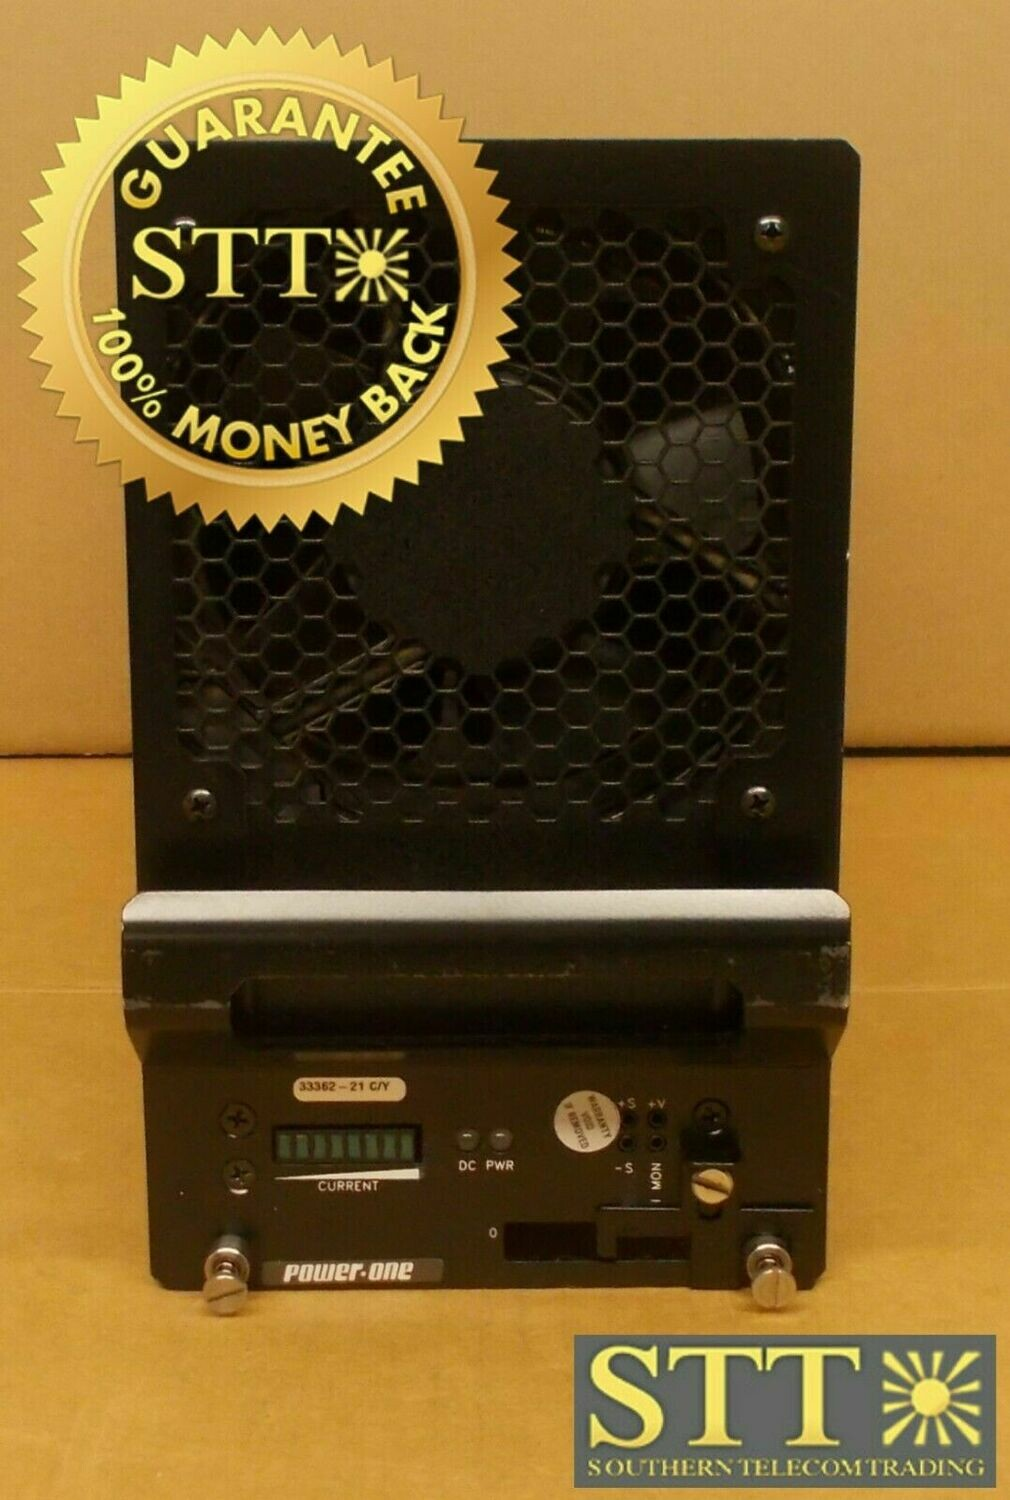 10A0061-001 POWER-ONE HVR48/75 75 AMP POWER RECTIFIER REFURBISHED - 90 DAY WARRANTY